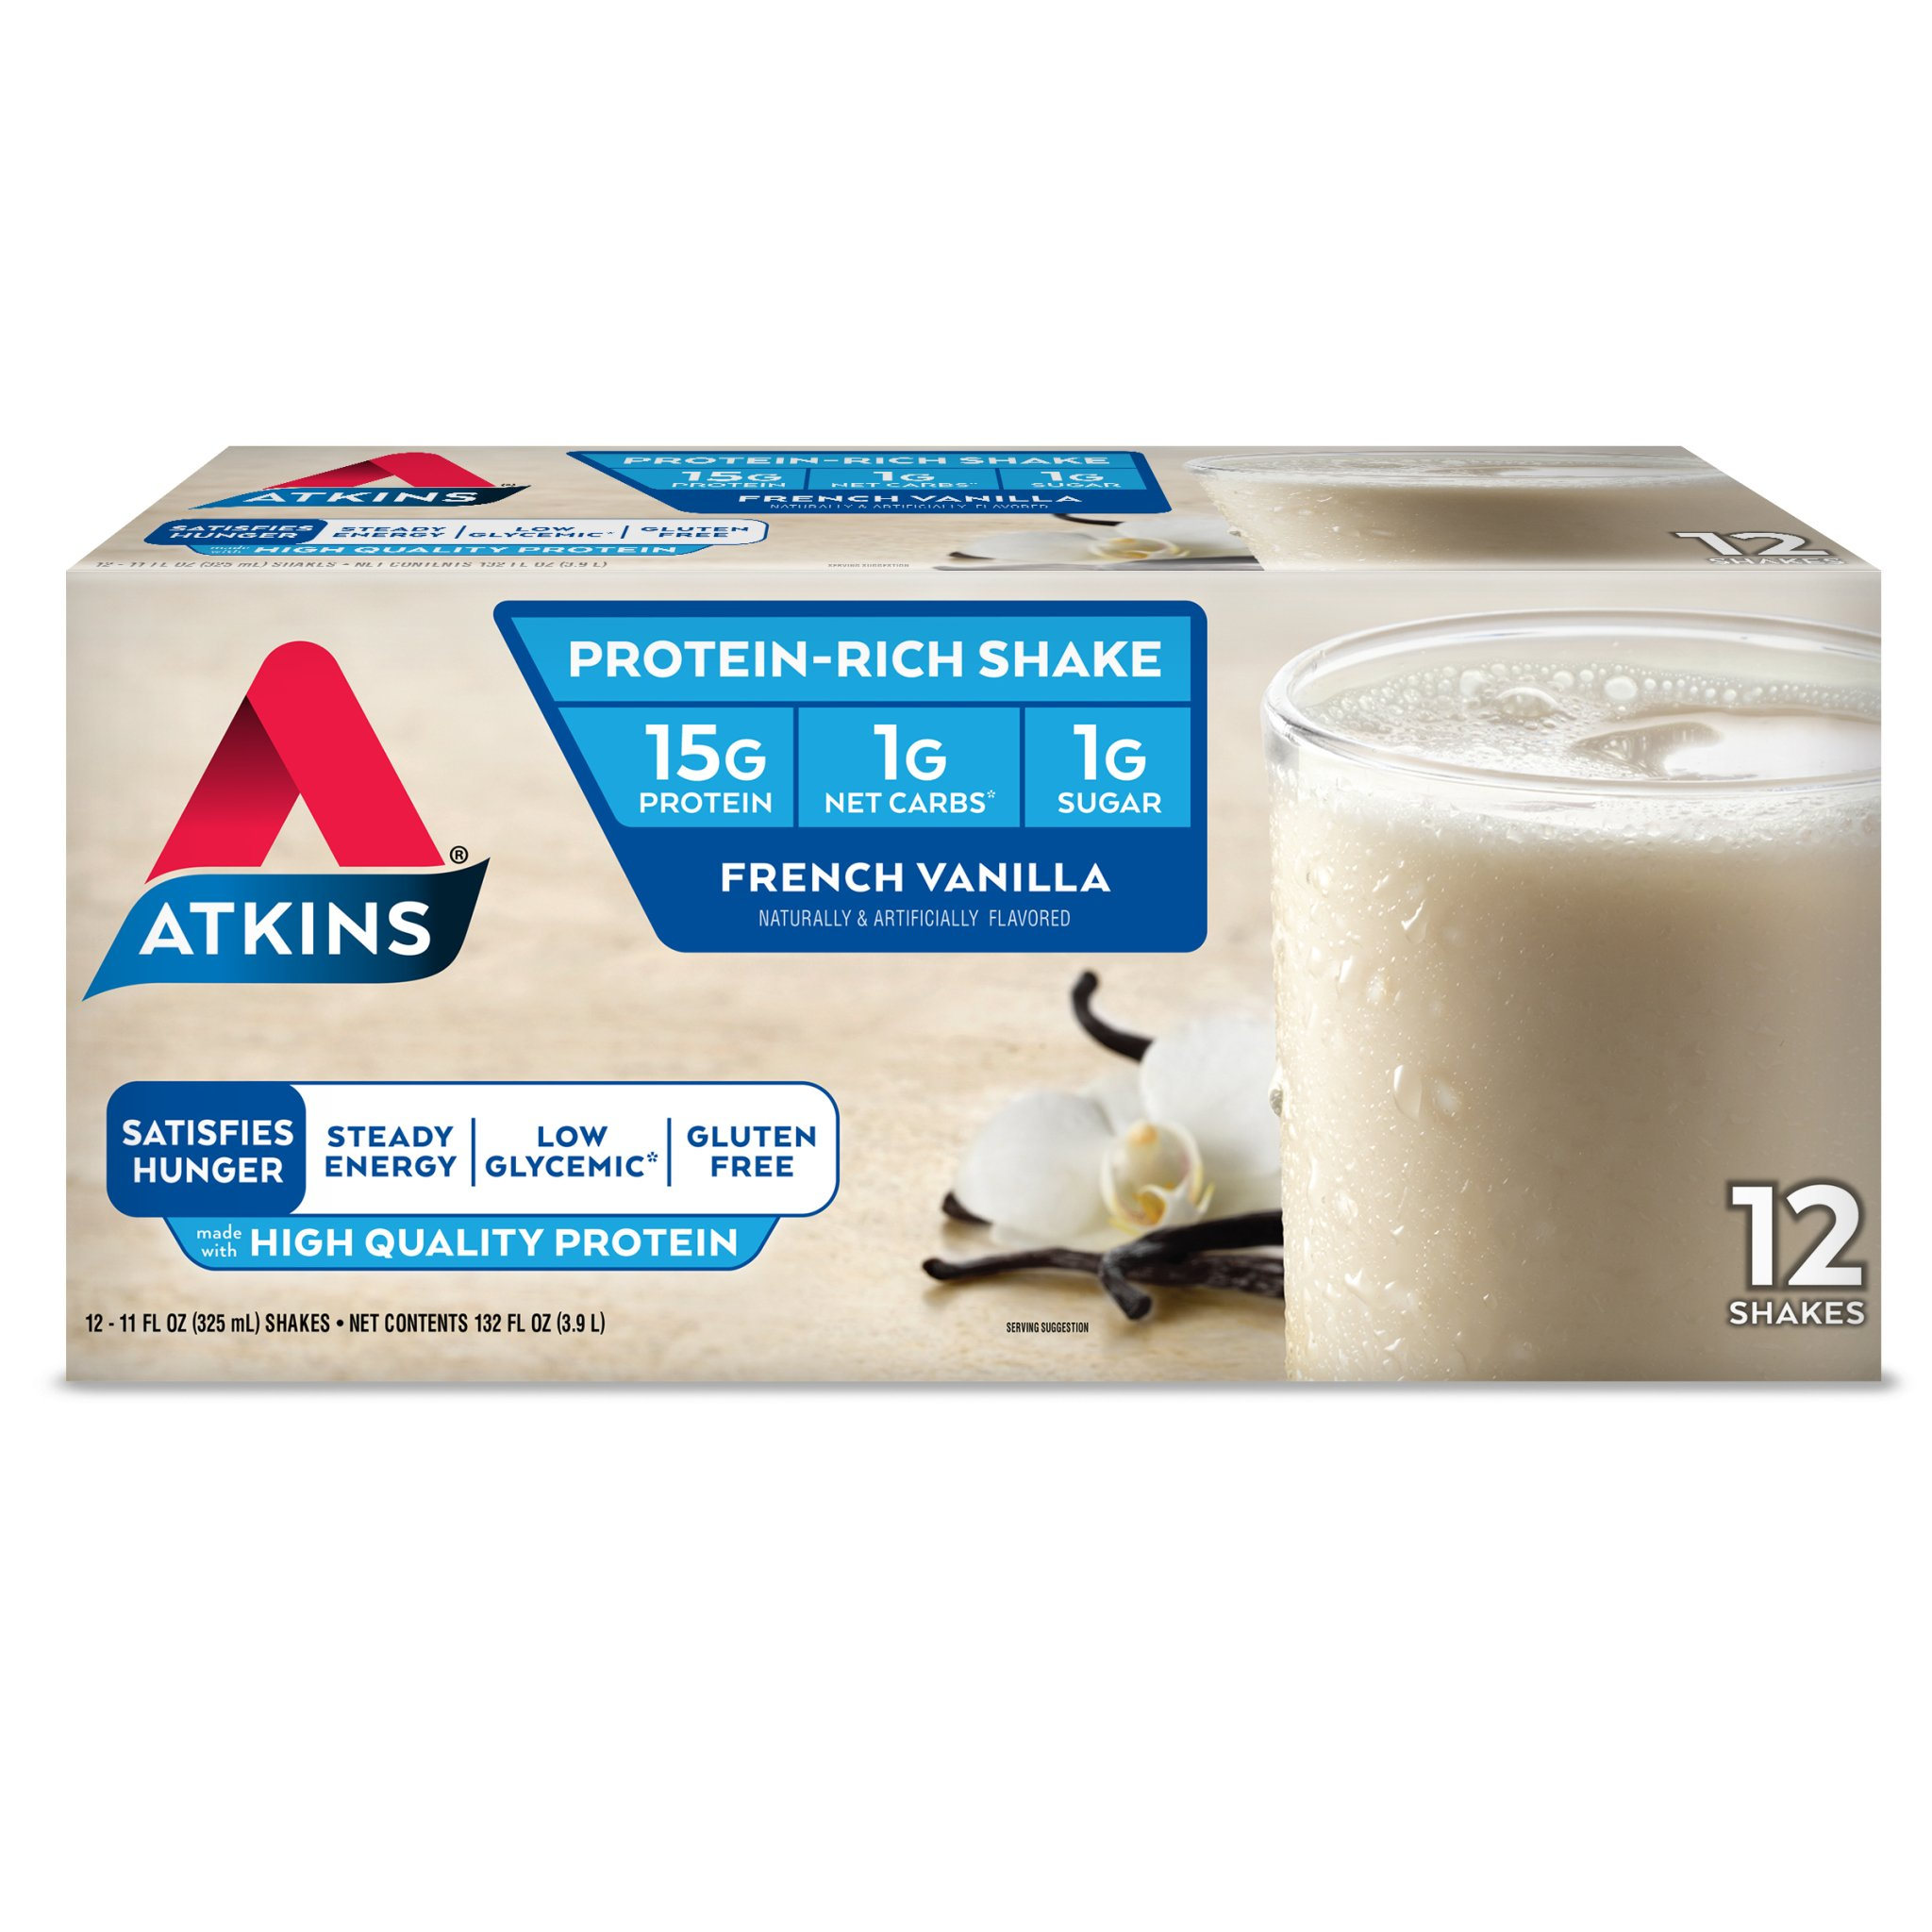 Atkins Gluten Free Protein-Rich Shake, French Vanilla, Keto Friendly, 12 Count by Atkins